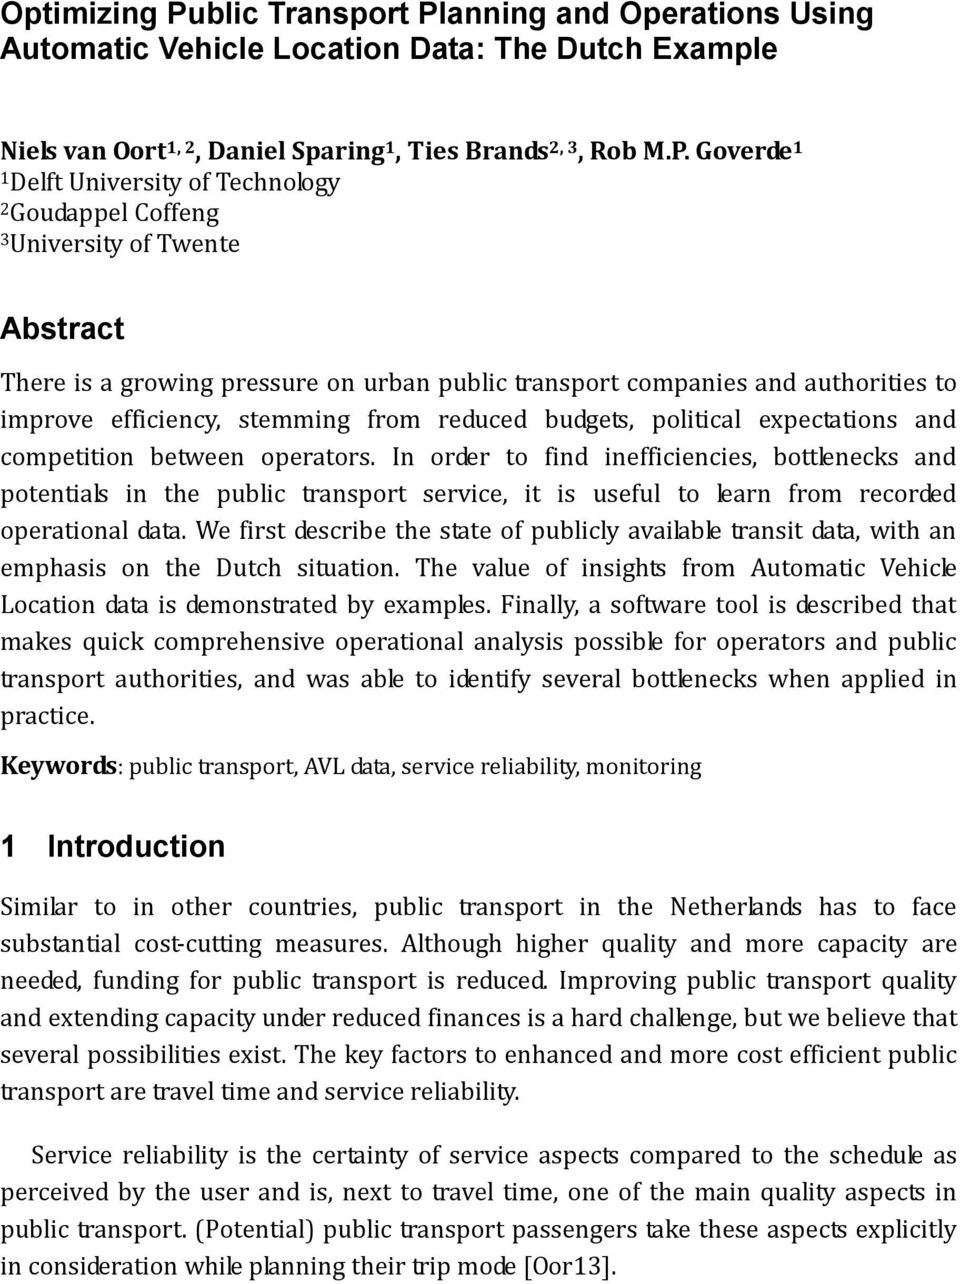 anning and Operations Using Automatic Vehicle Location Data: The Dutch Example Niels van Oort 1, 2, Daniel Sparing 1, Ties Brands 2, 3, Rob M.P.